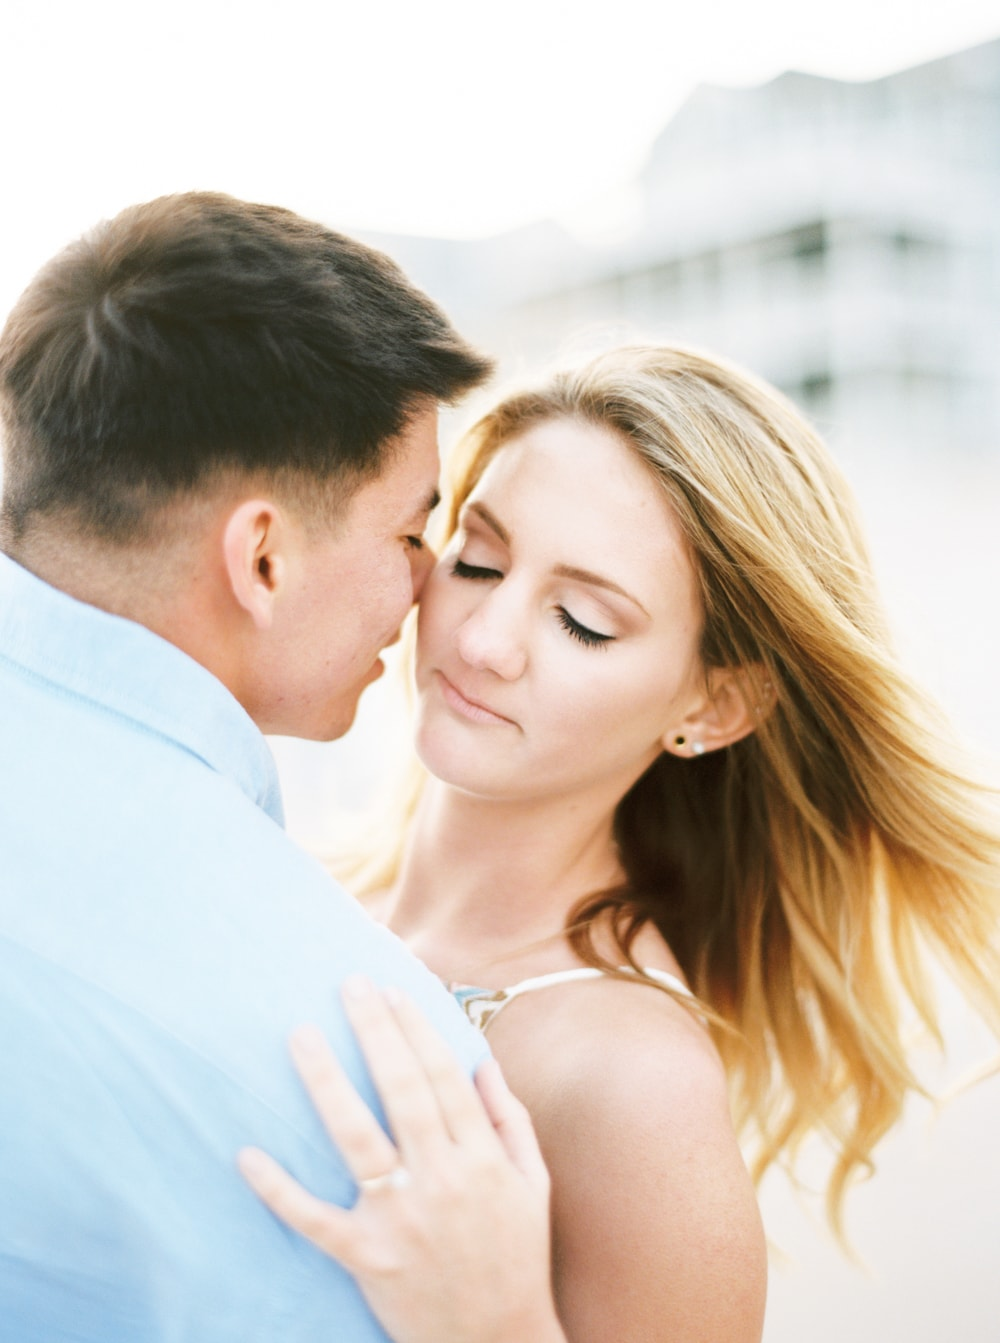 north-carolina-engagement-photography-65-min.jpg